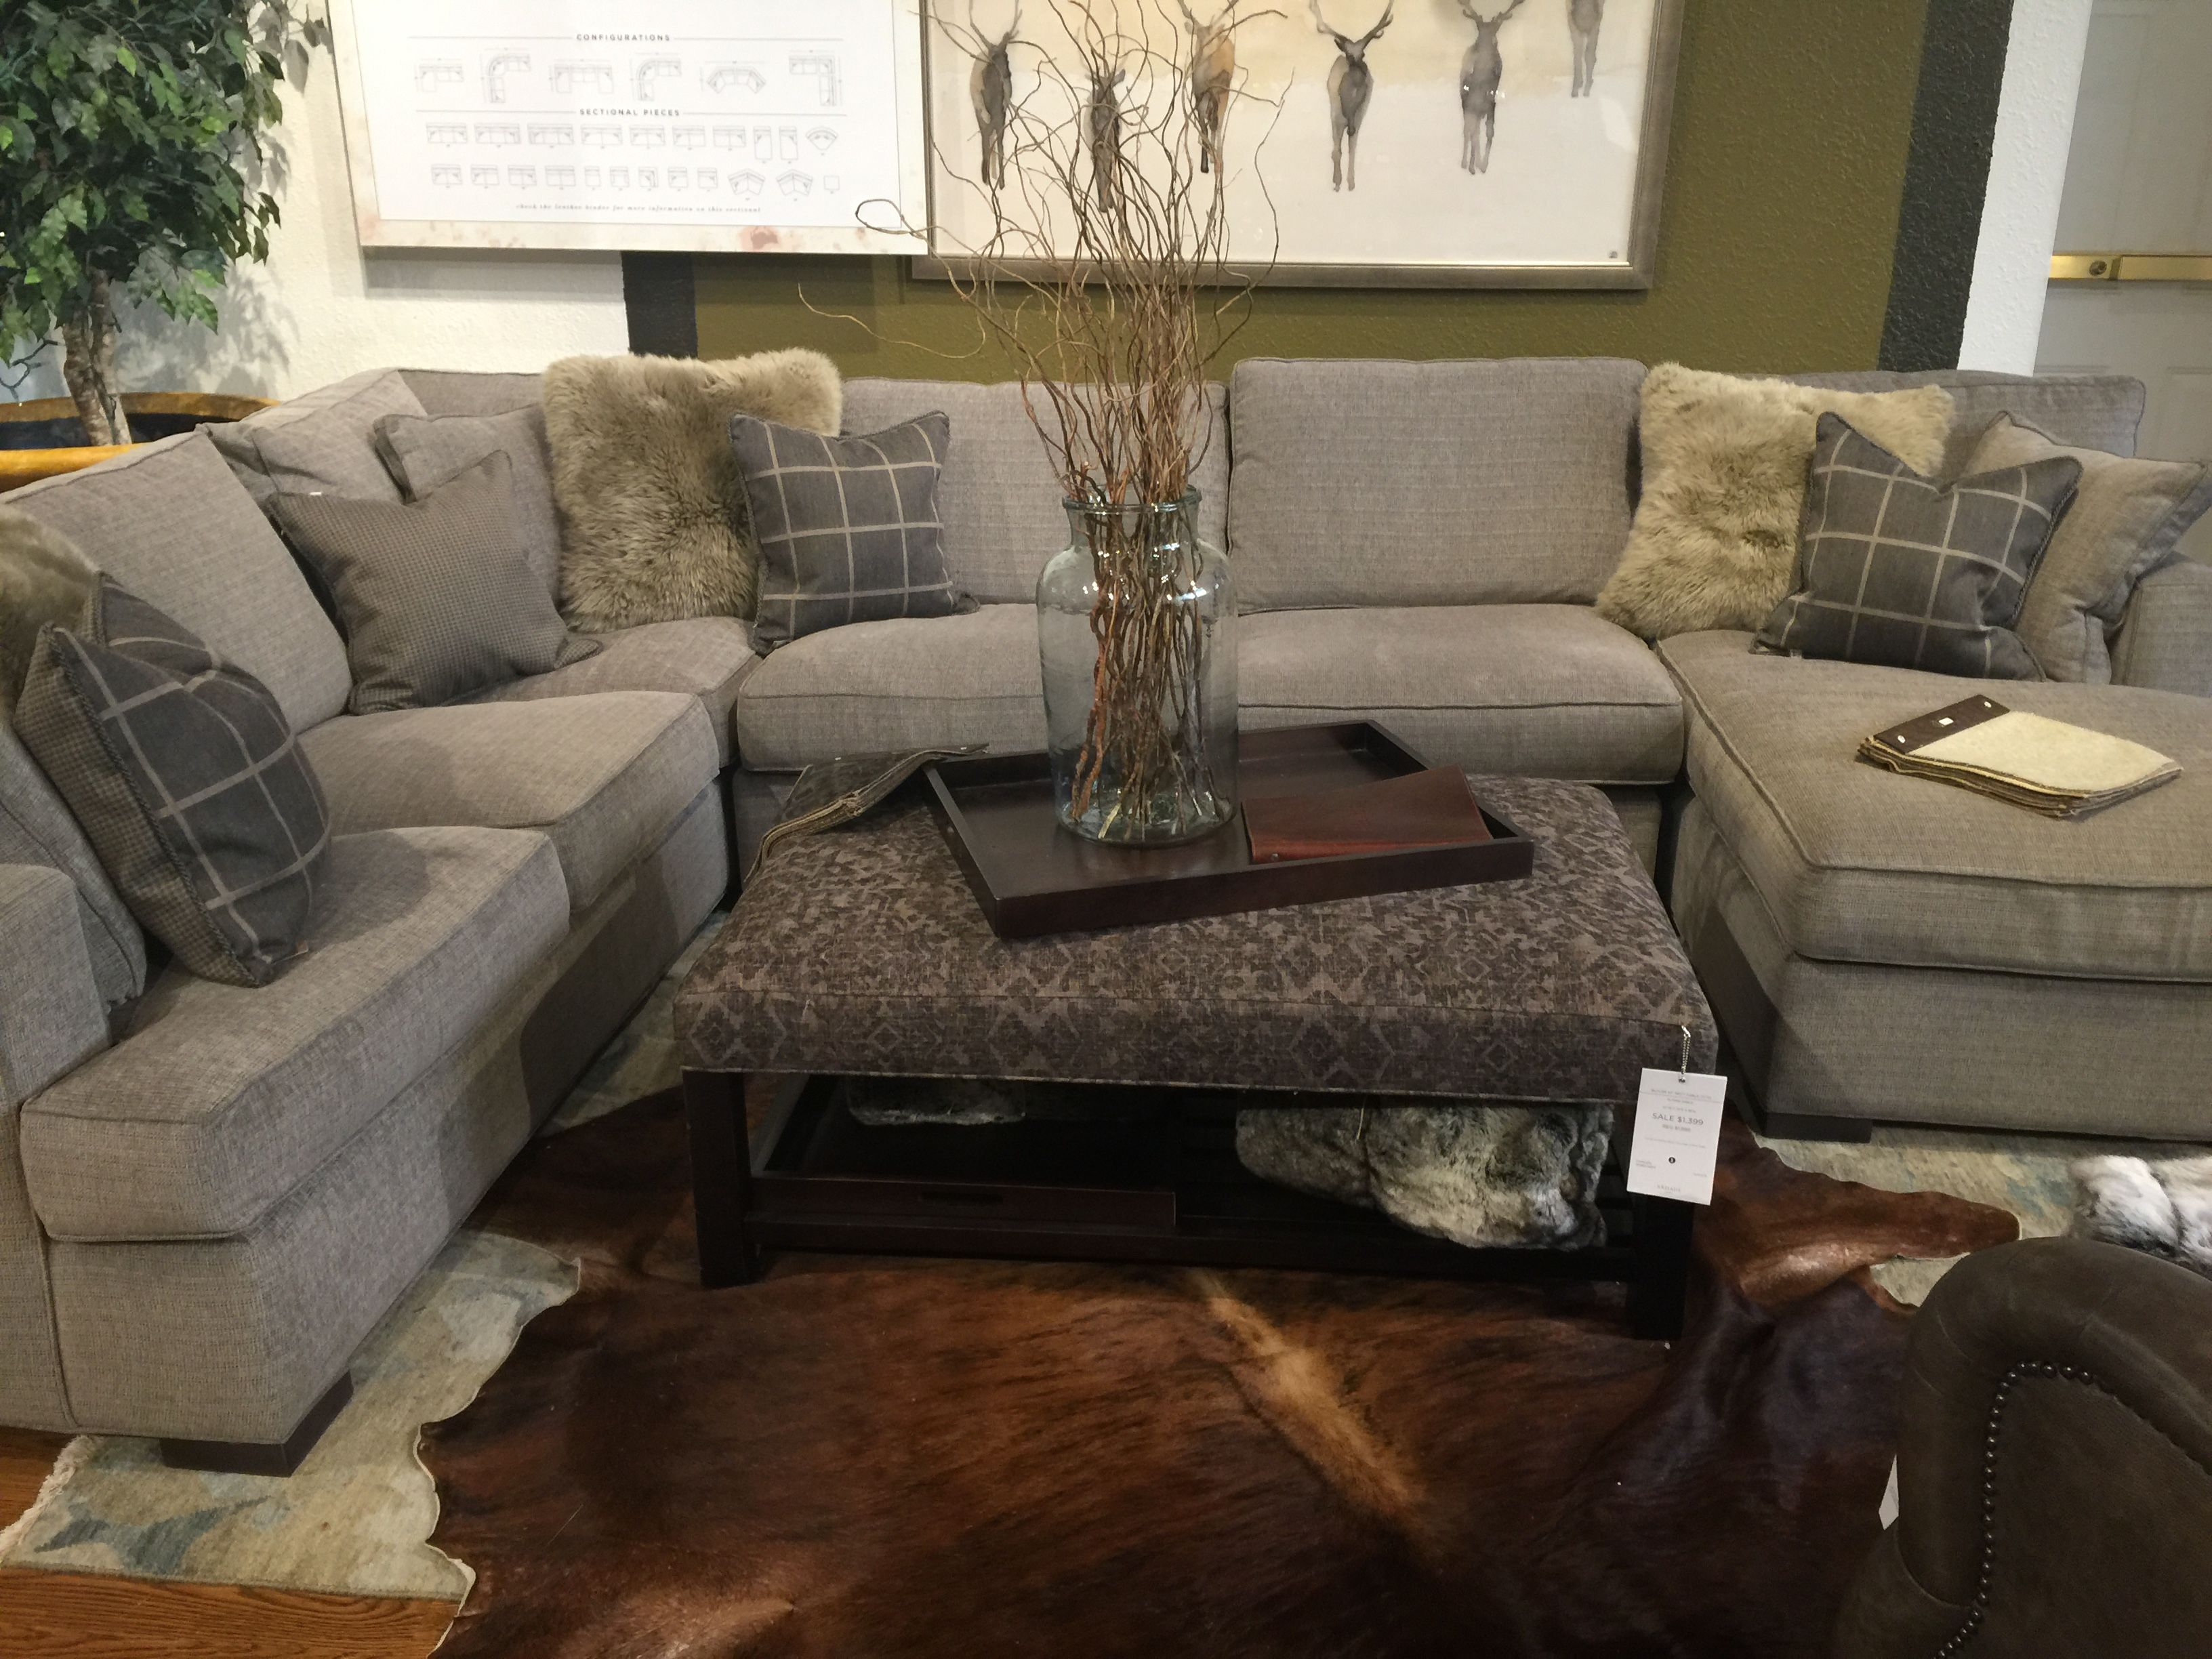 Dune sectional in stock fabric Driscoll Marble